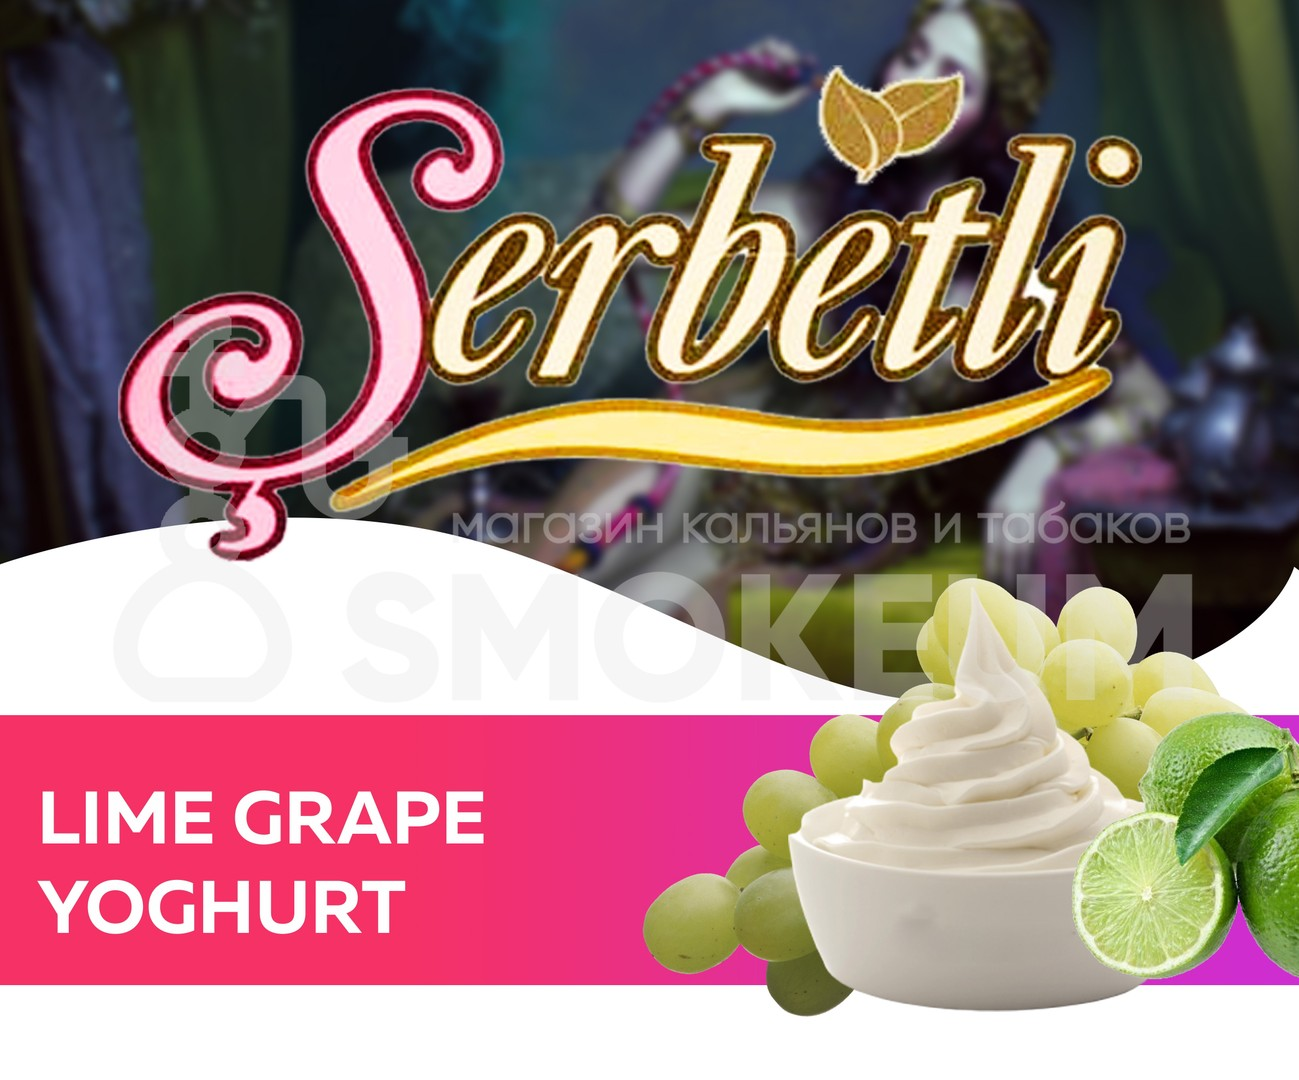 Табак Serbetli - Lime Grape Yoghurt (Йогурт с Лаймом и Виноградом) 50 гр